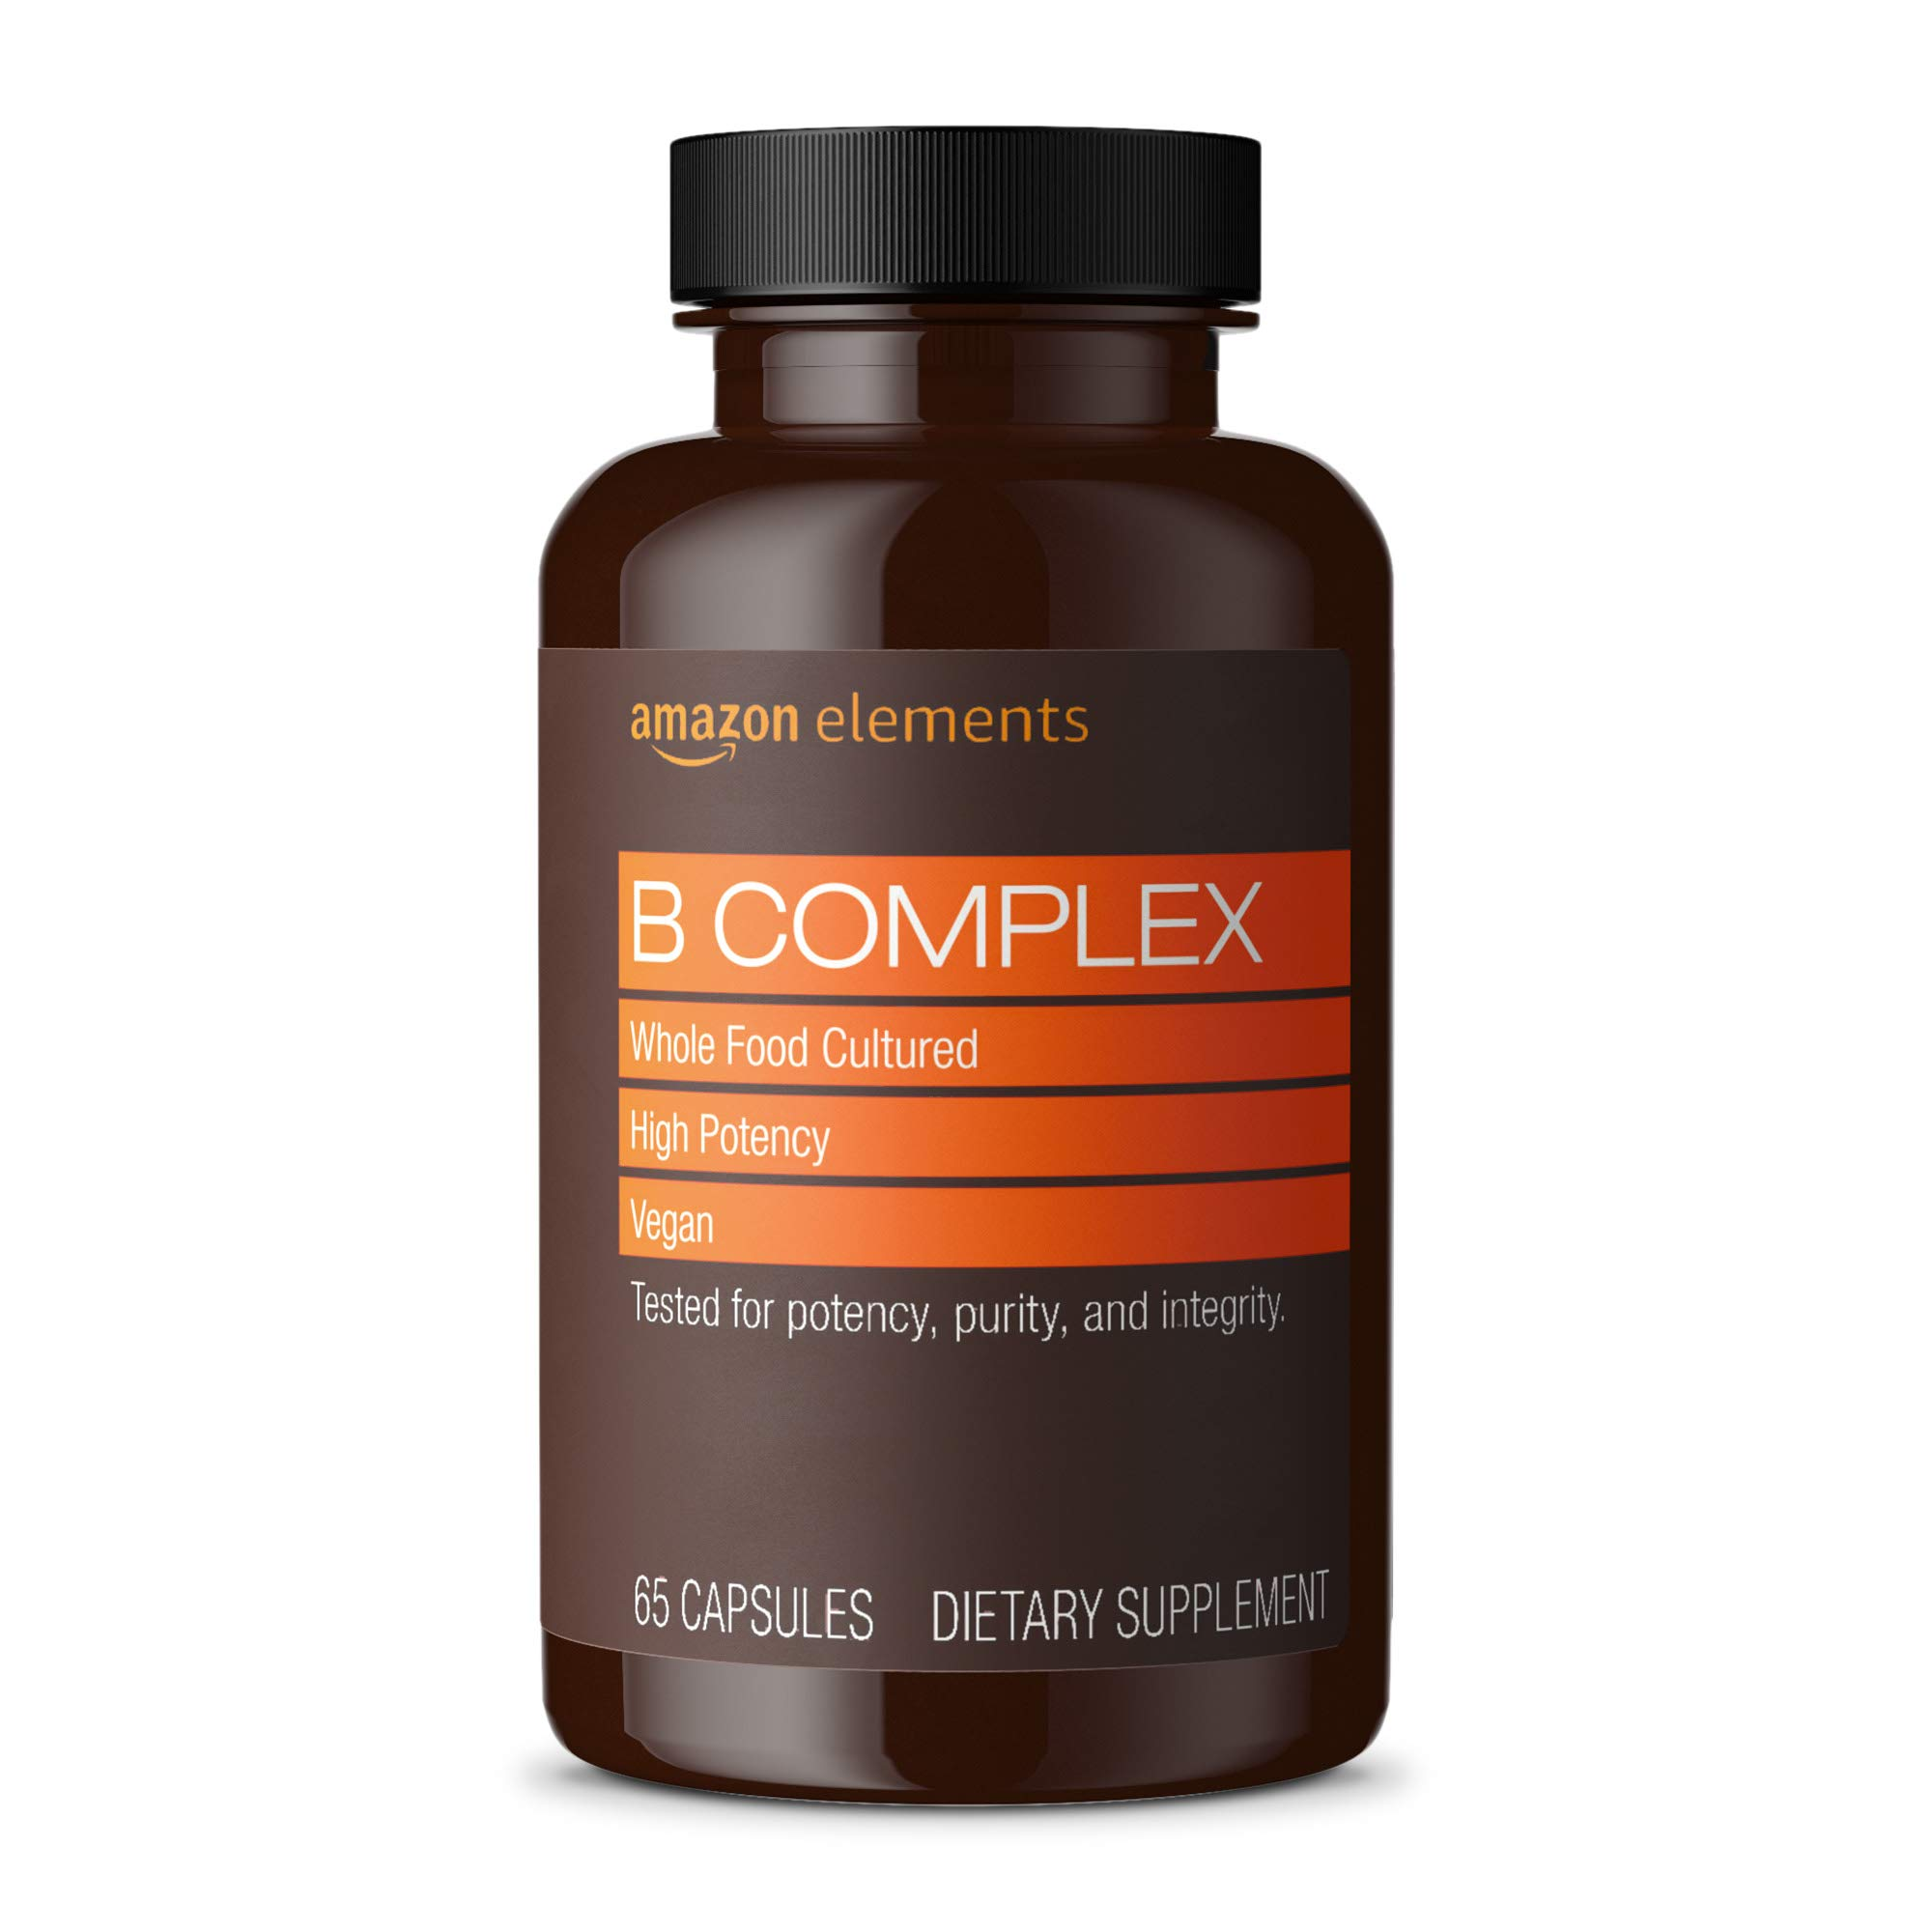 Amazon Elements B Complex, High Potency, 83% Whole Food Cultured, Supports Immune and Normal Energy Metabolism, Vegan, 65 Capsules, 2 month supply (Packaging may vary)